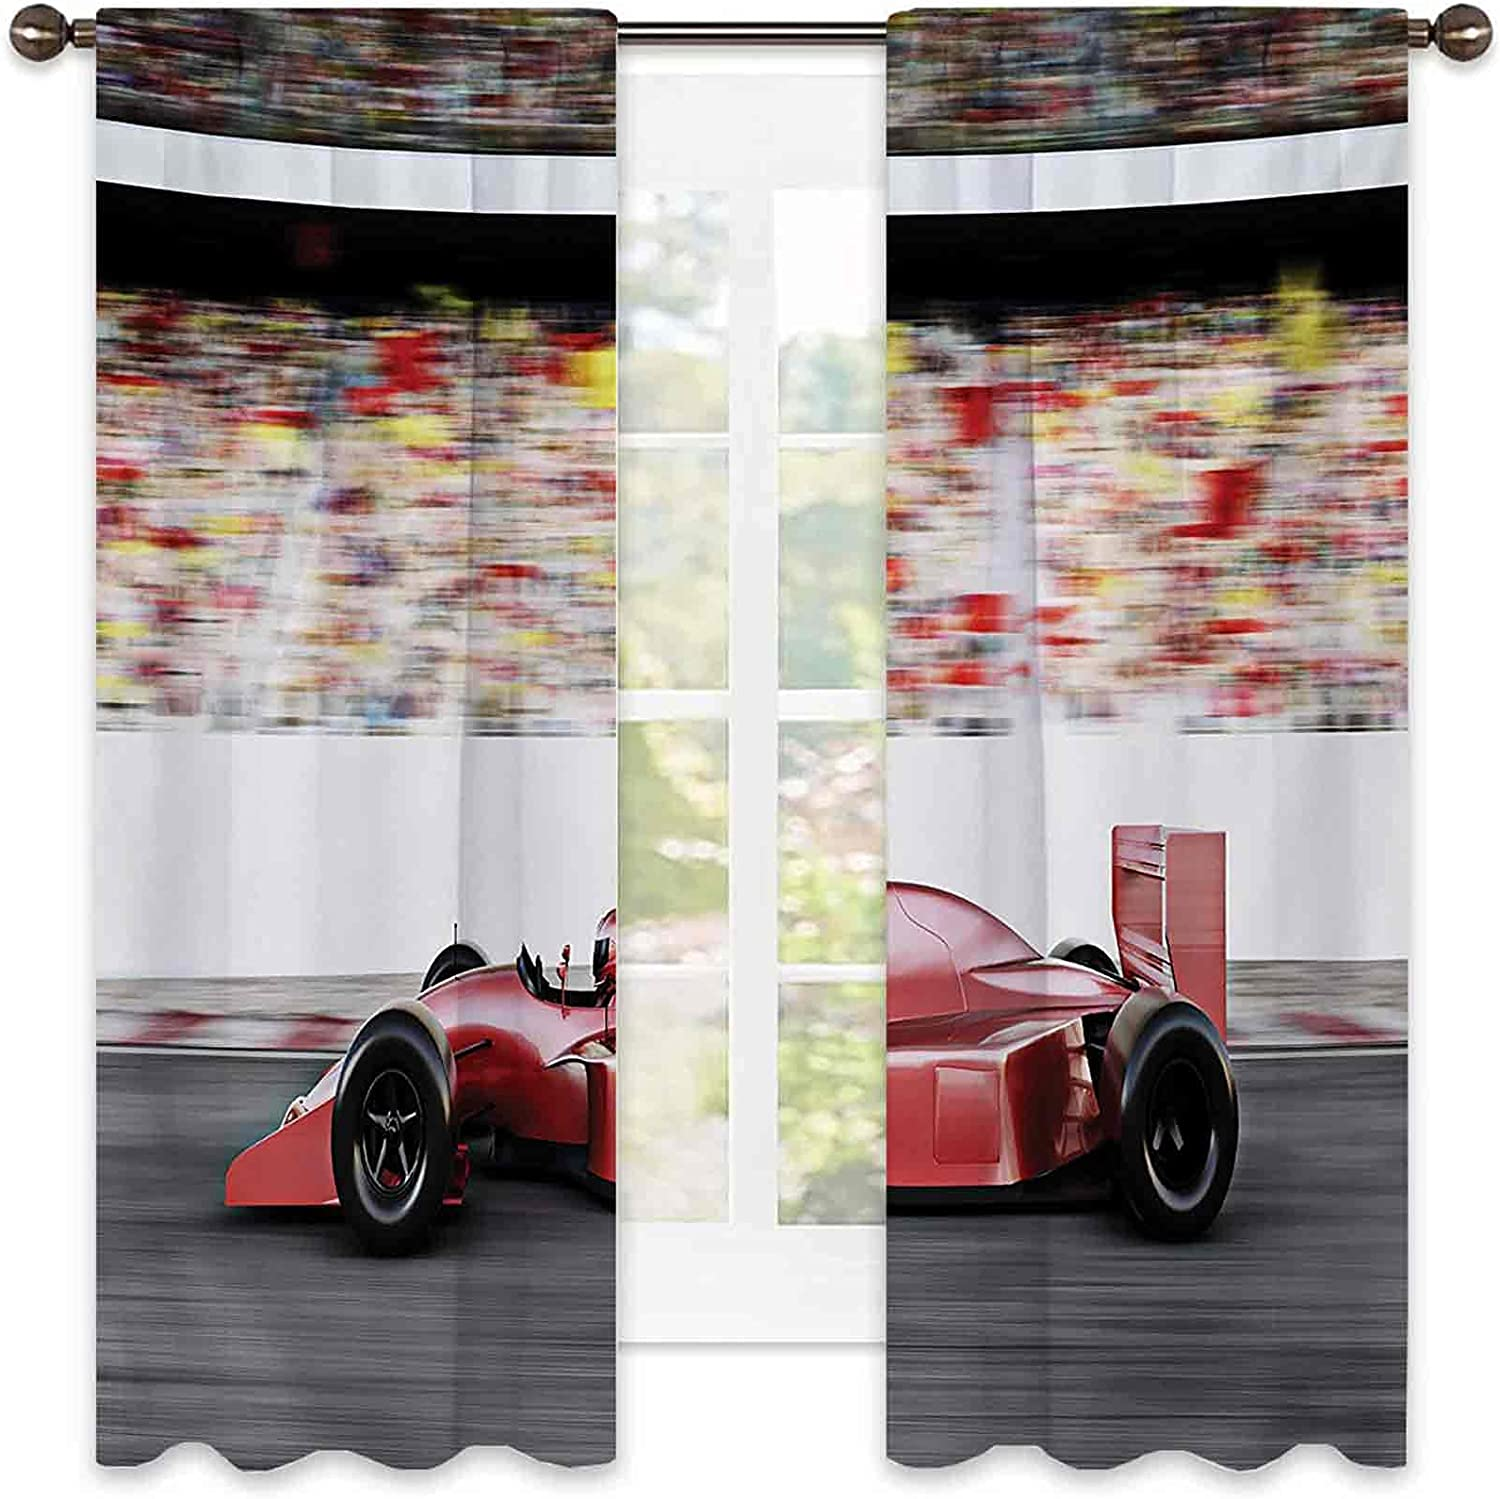 Cars Heat New products world's highest Choice quality popular Insulation Curtain Sports Theme Race Car Side Red Vie